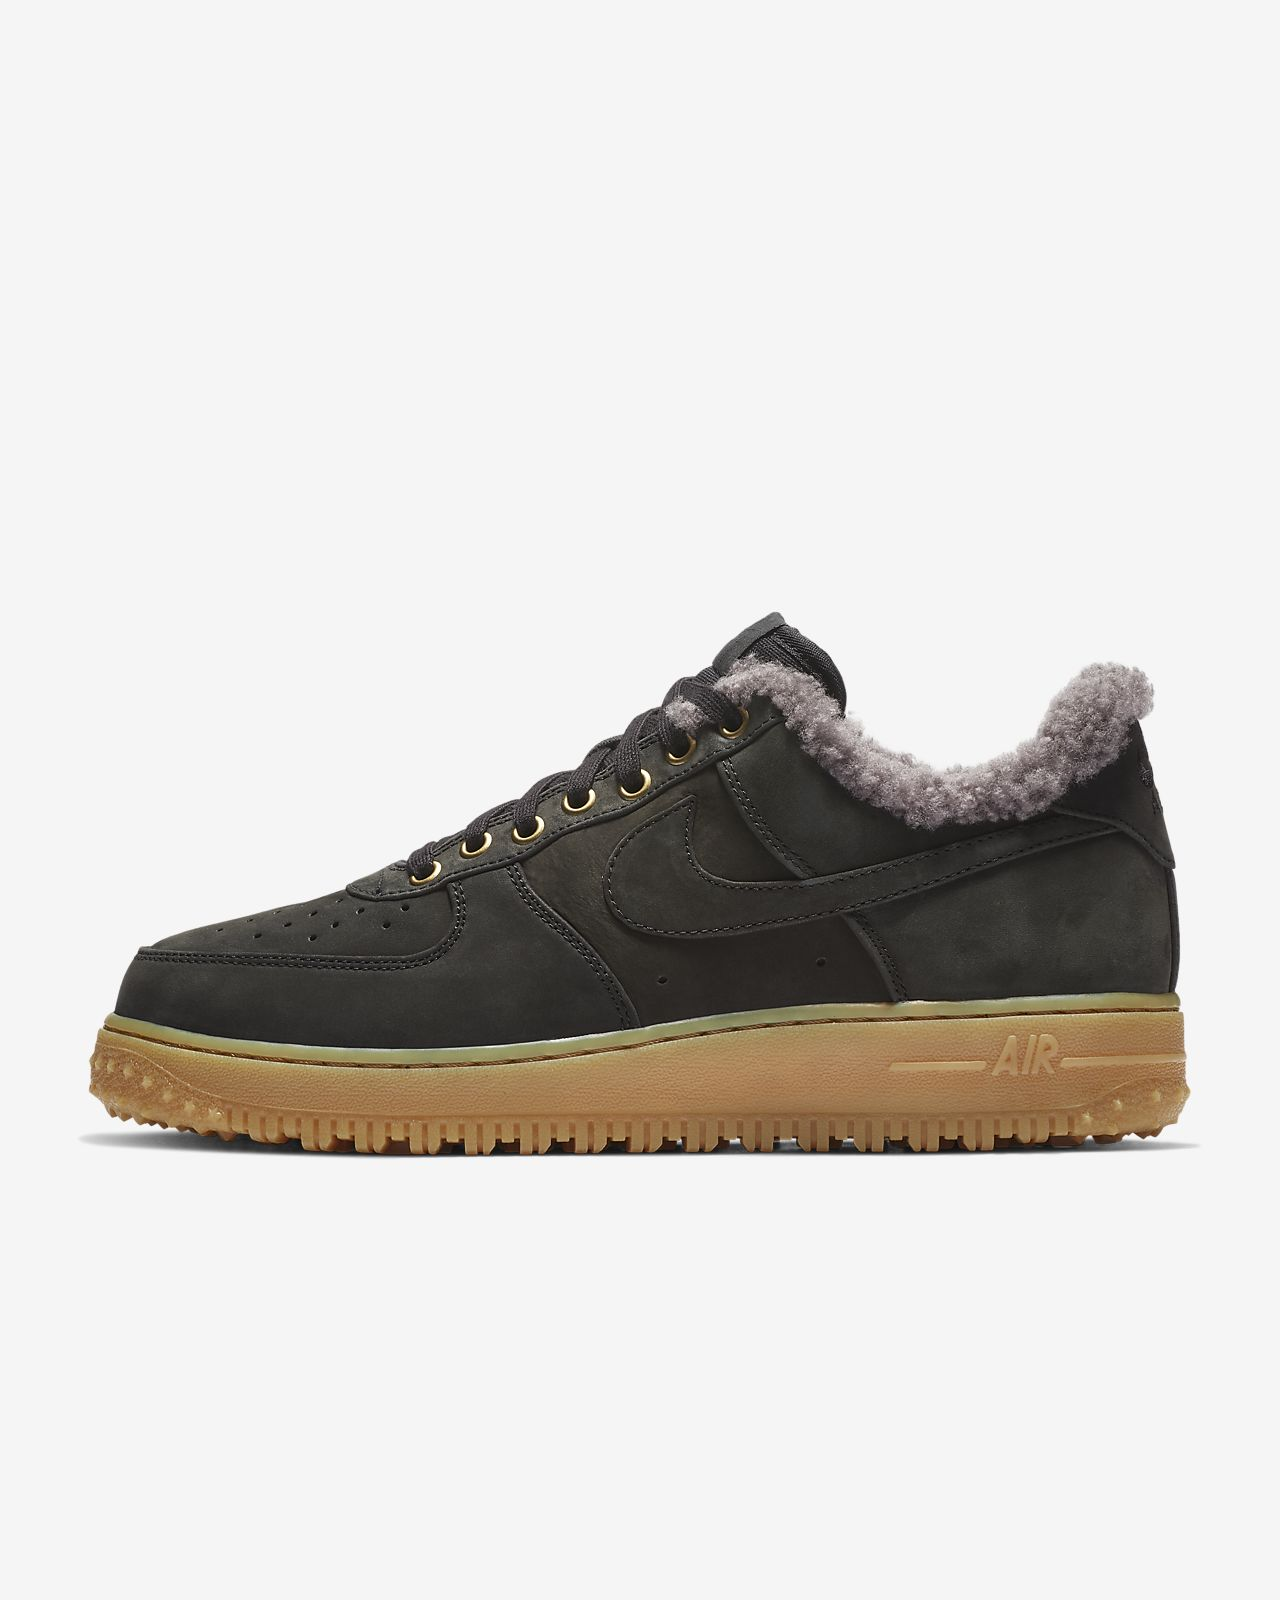 581dcb90ec72e Nike Air Force 1 Premium Winter Zapatillas - Hombre. Nike.com ES